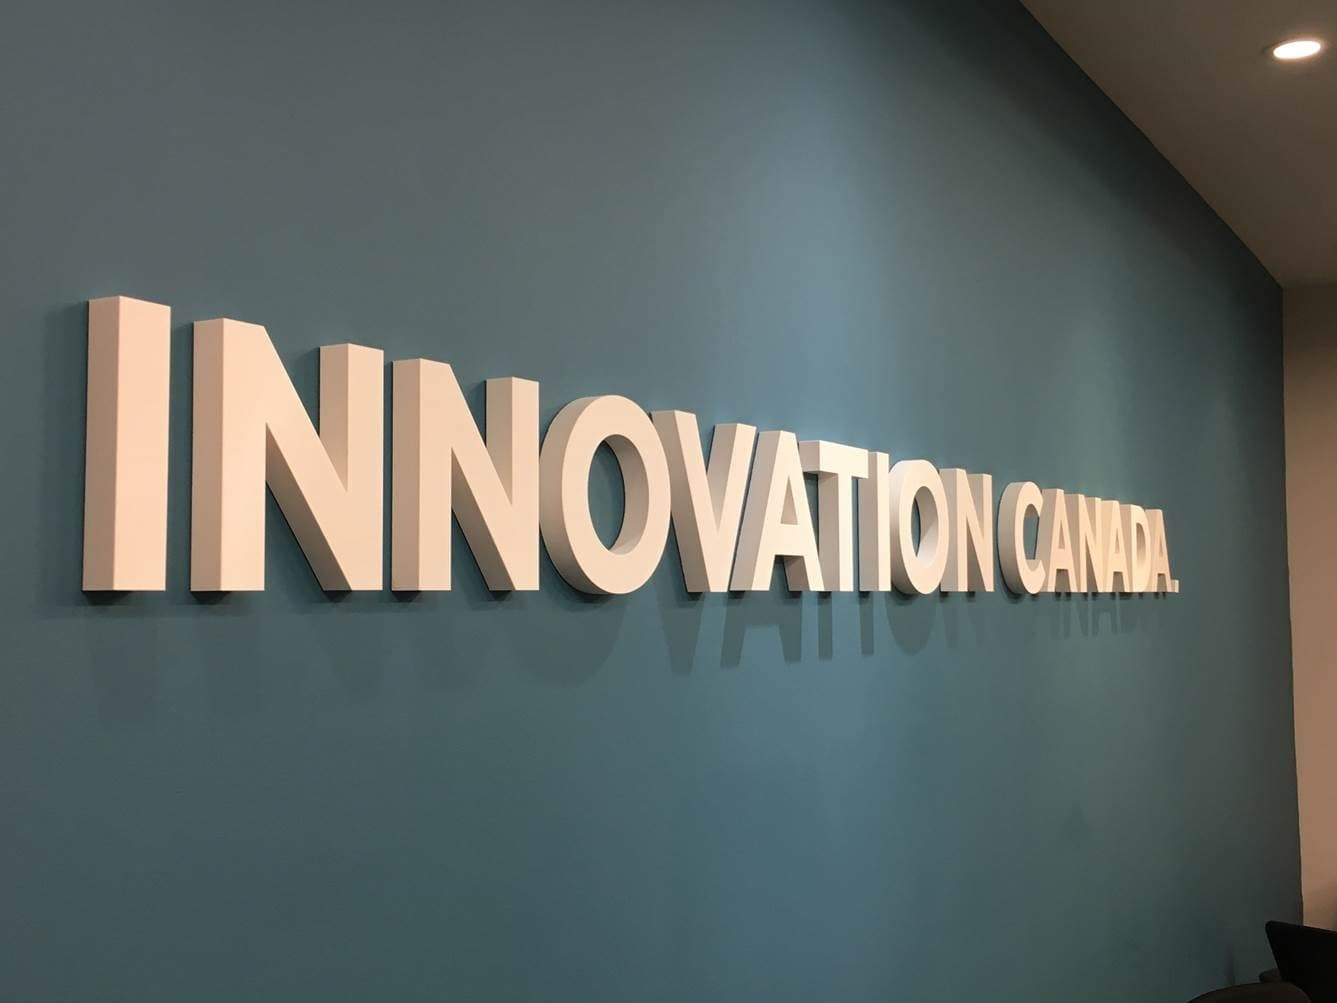 innovation canada sign on a blue wall